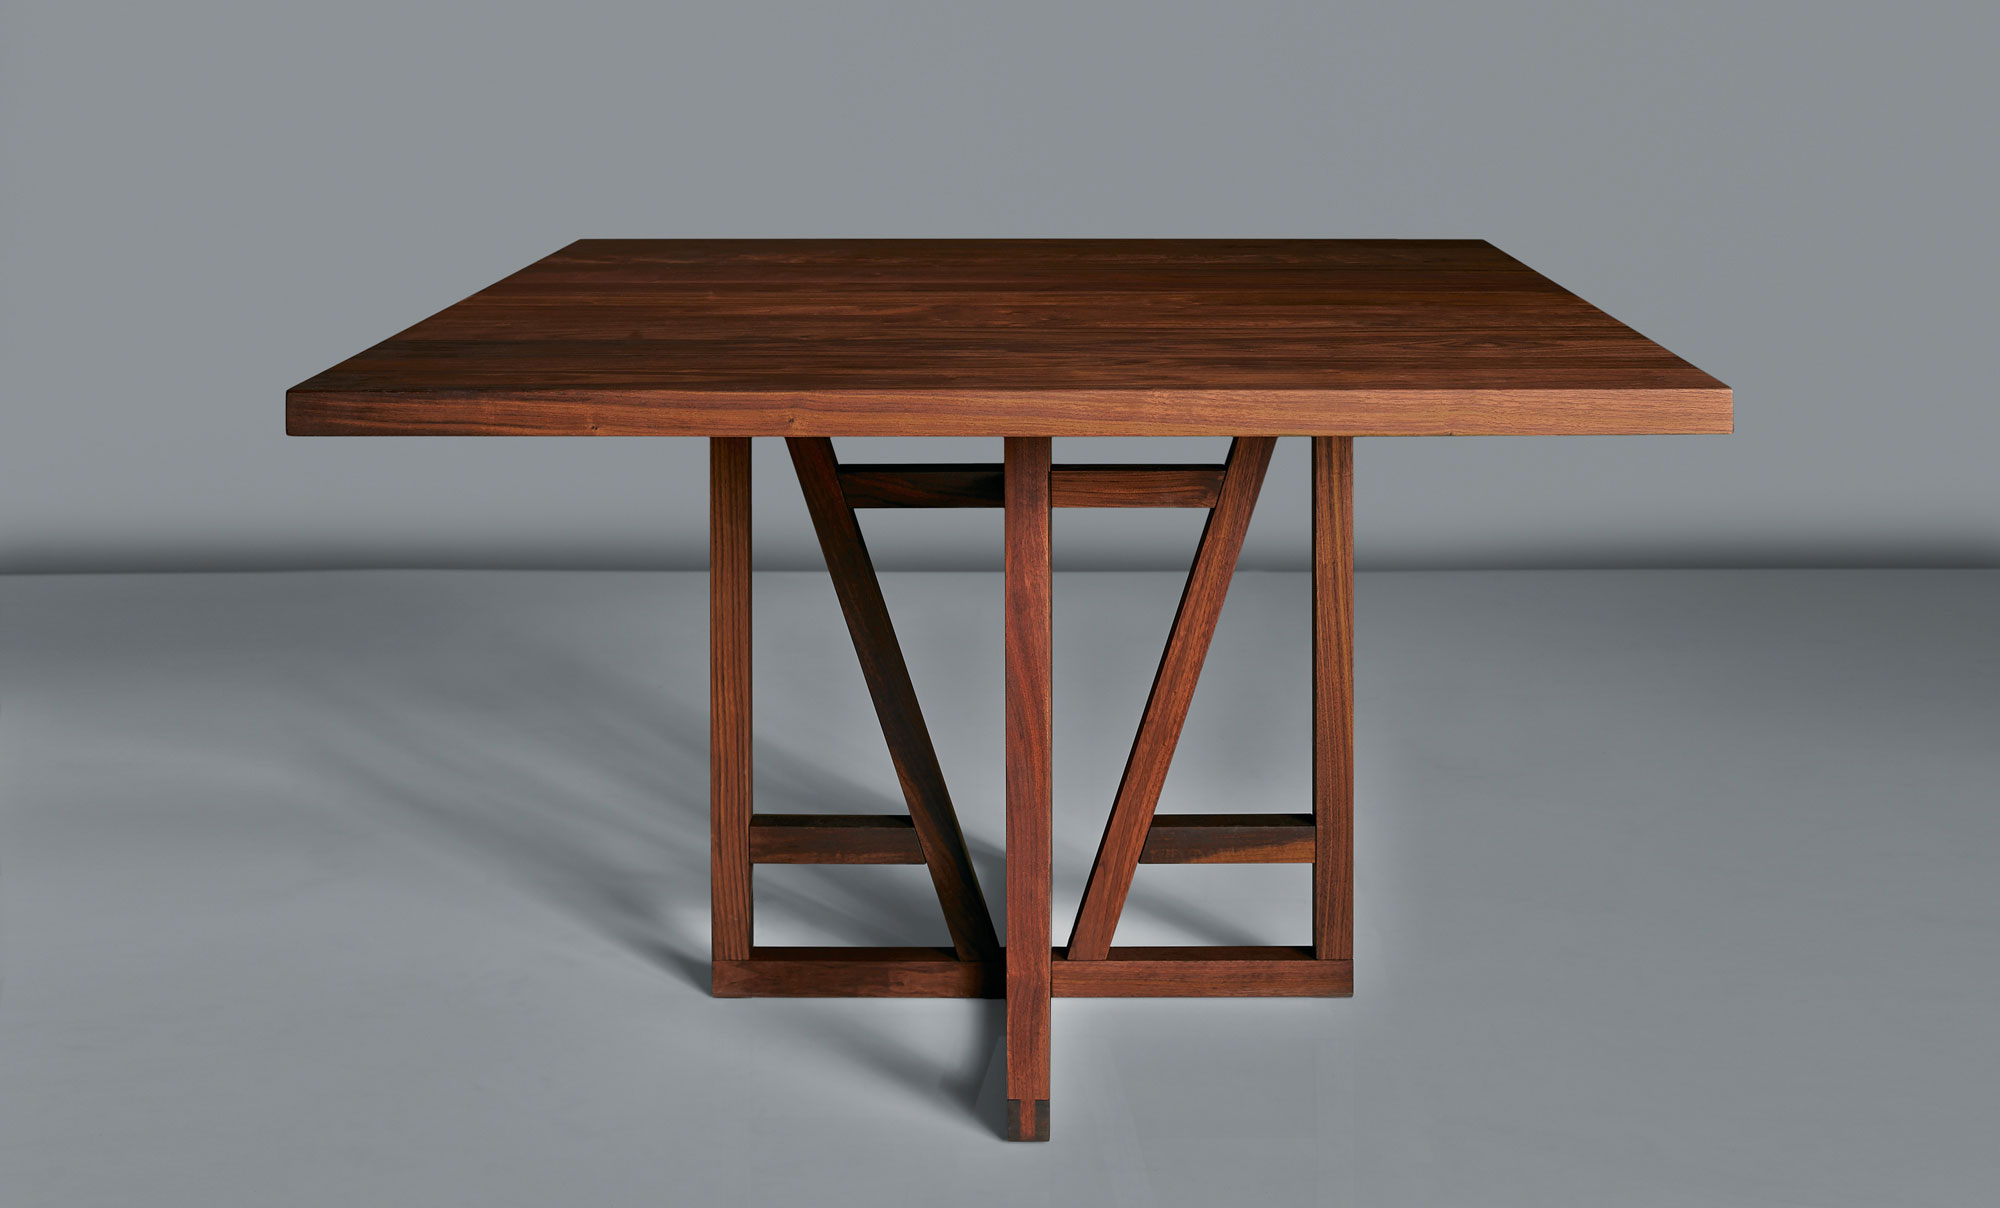 Square Designer Table FACHWERK SQUARE 0232 custom made in solid wood by vitamin design